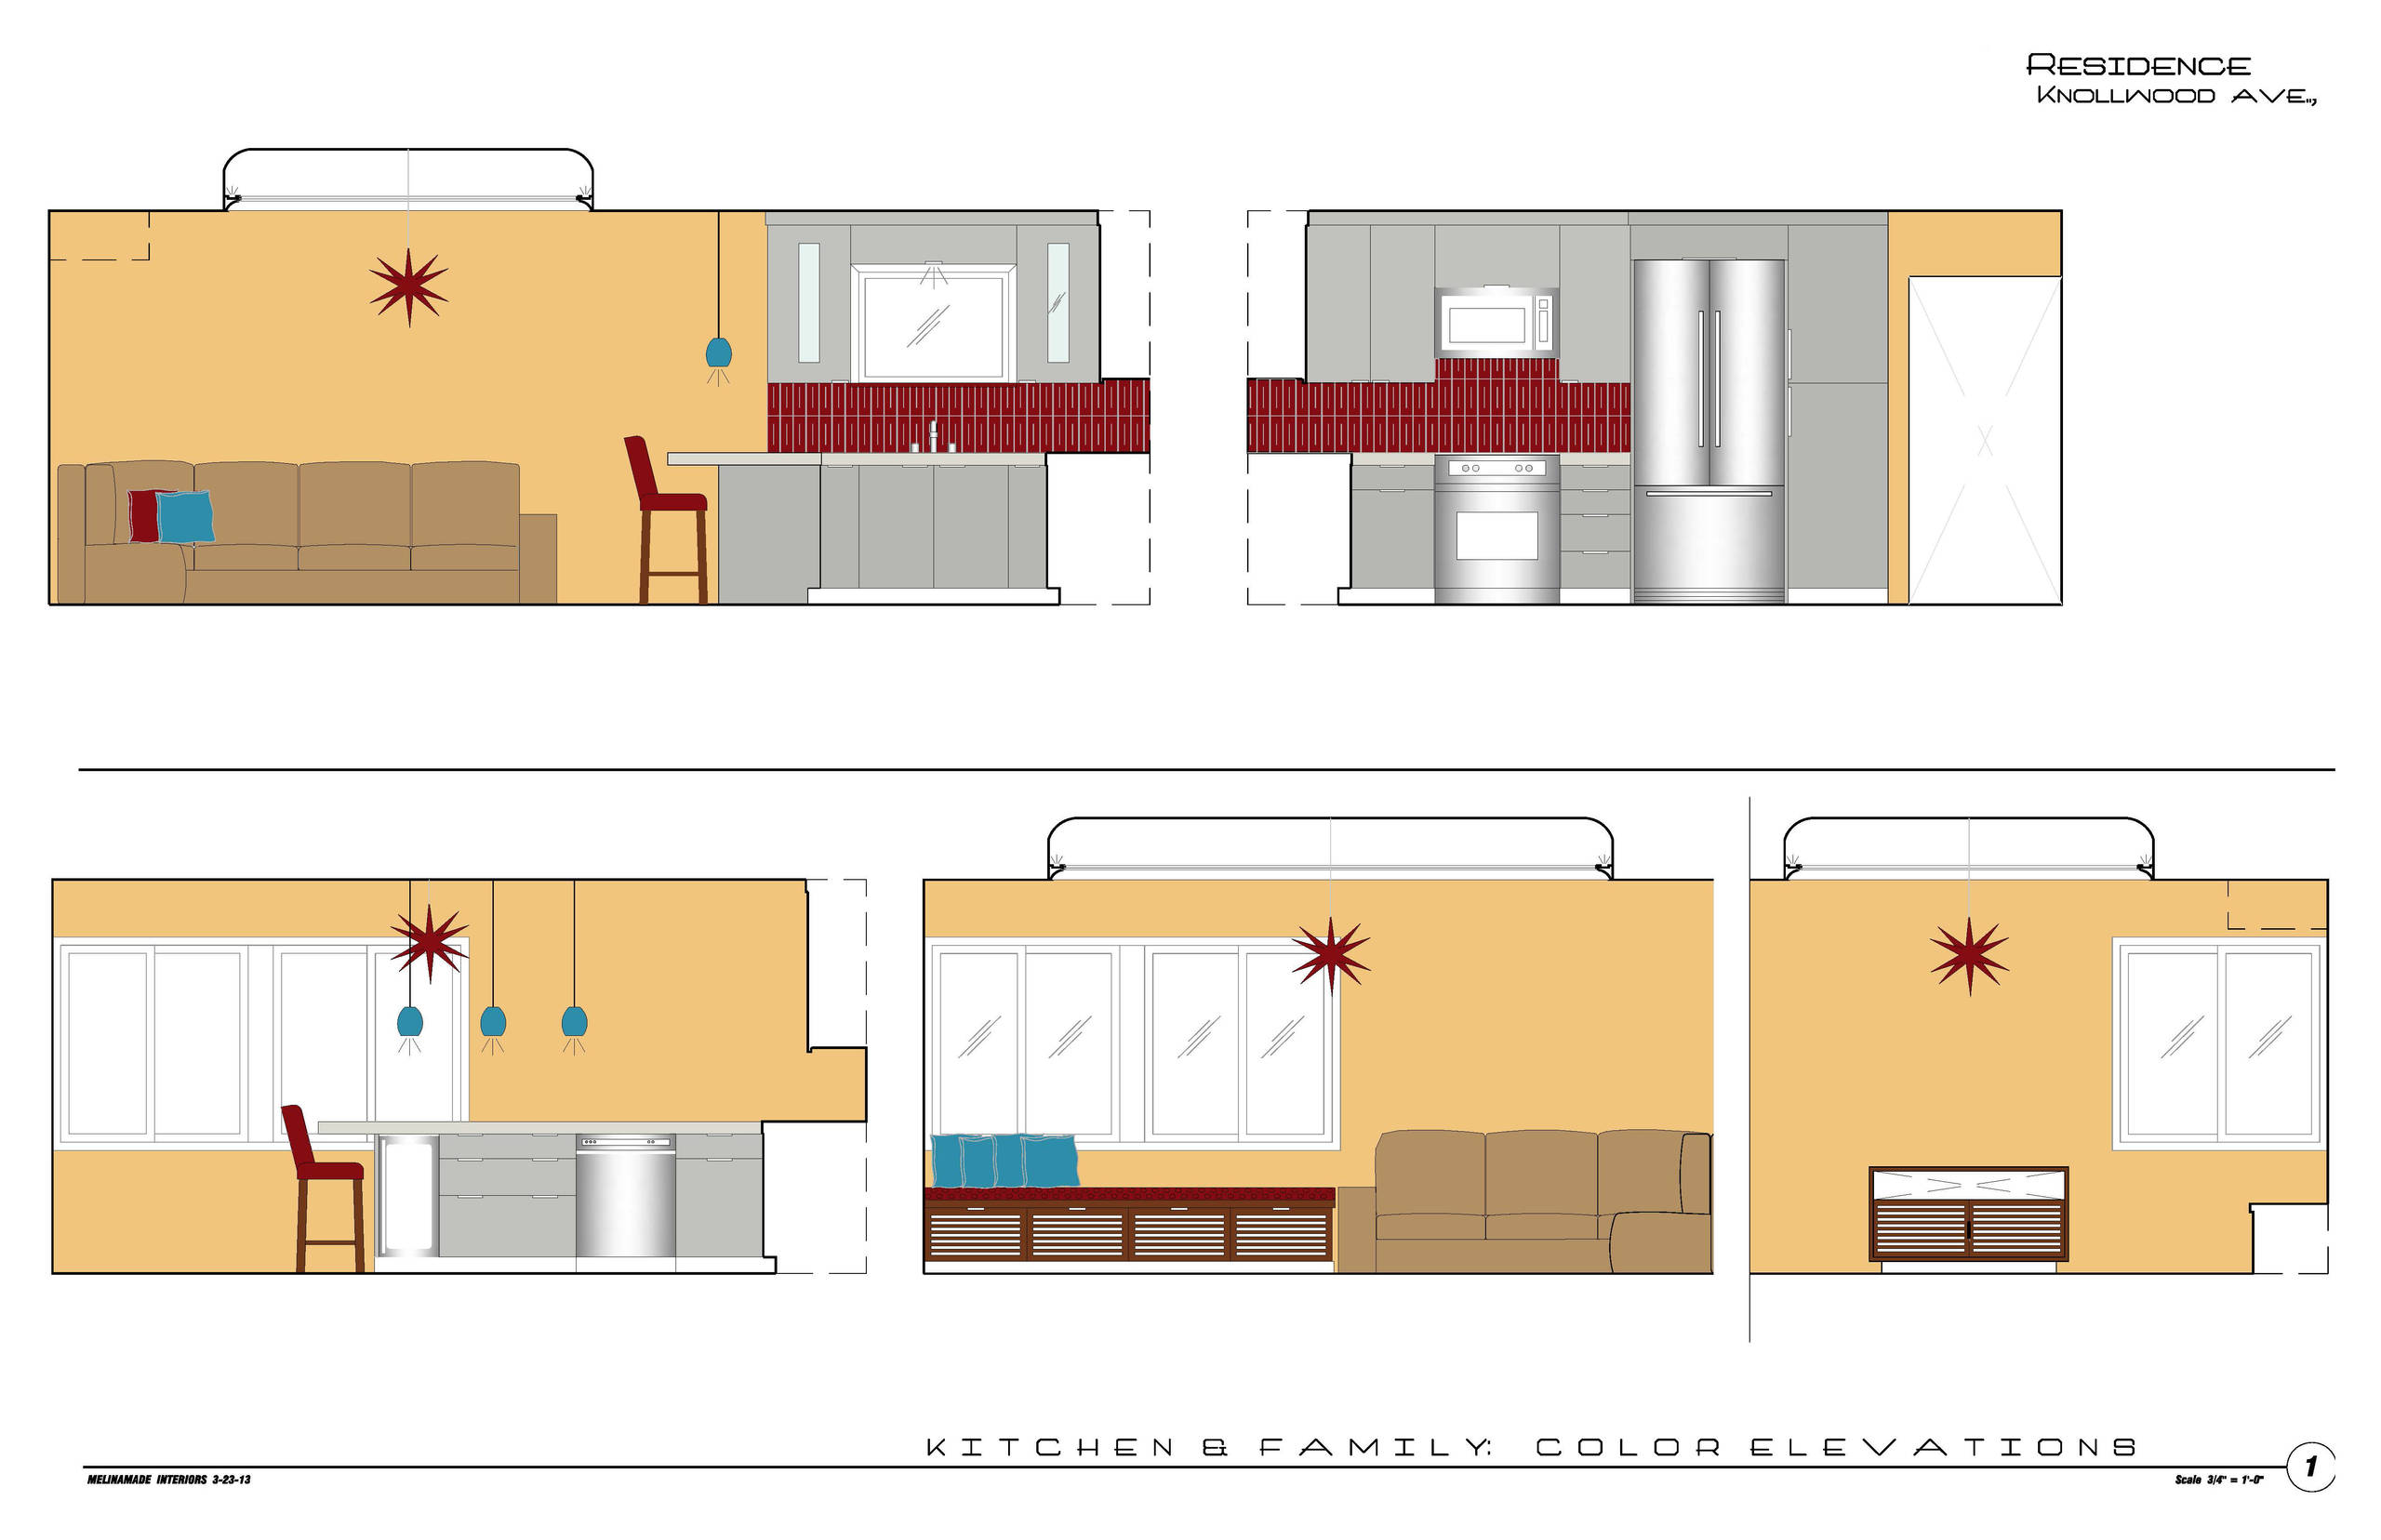 MCM kitchen & family - interior elevation drawings